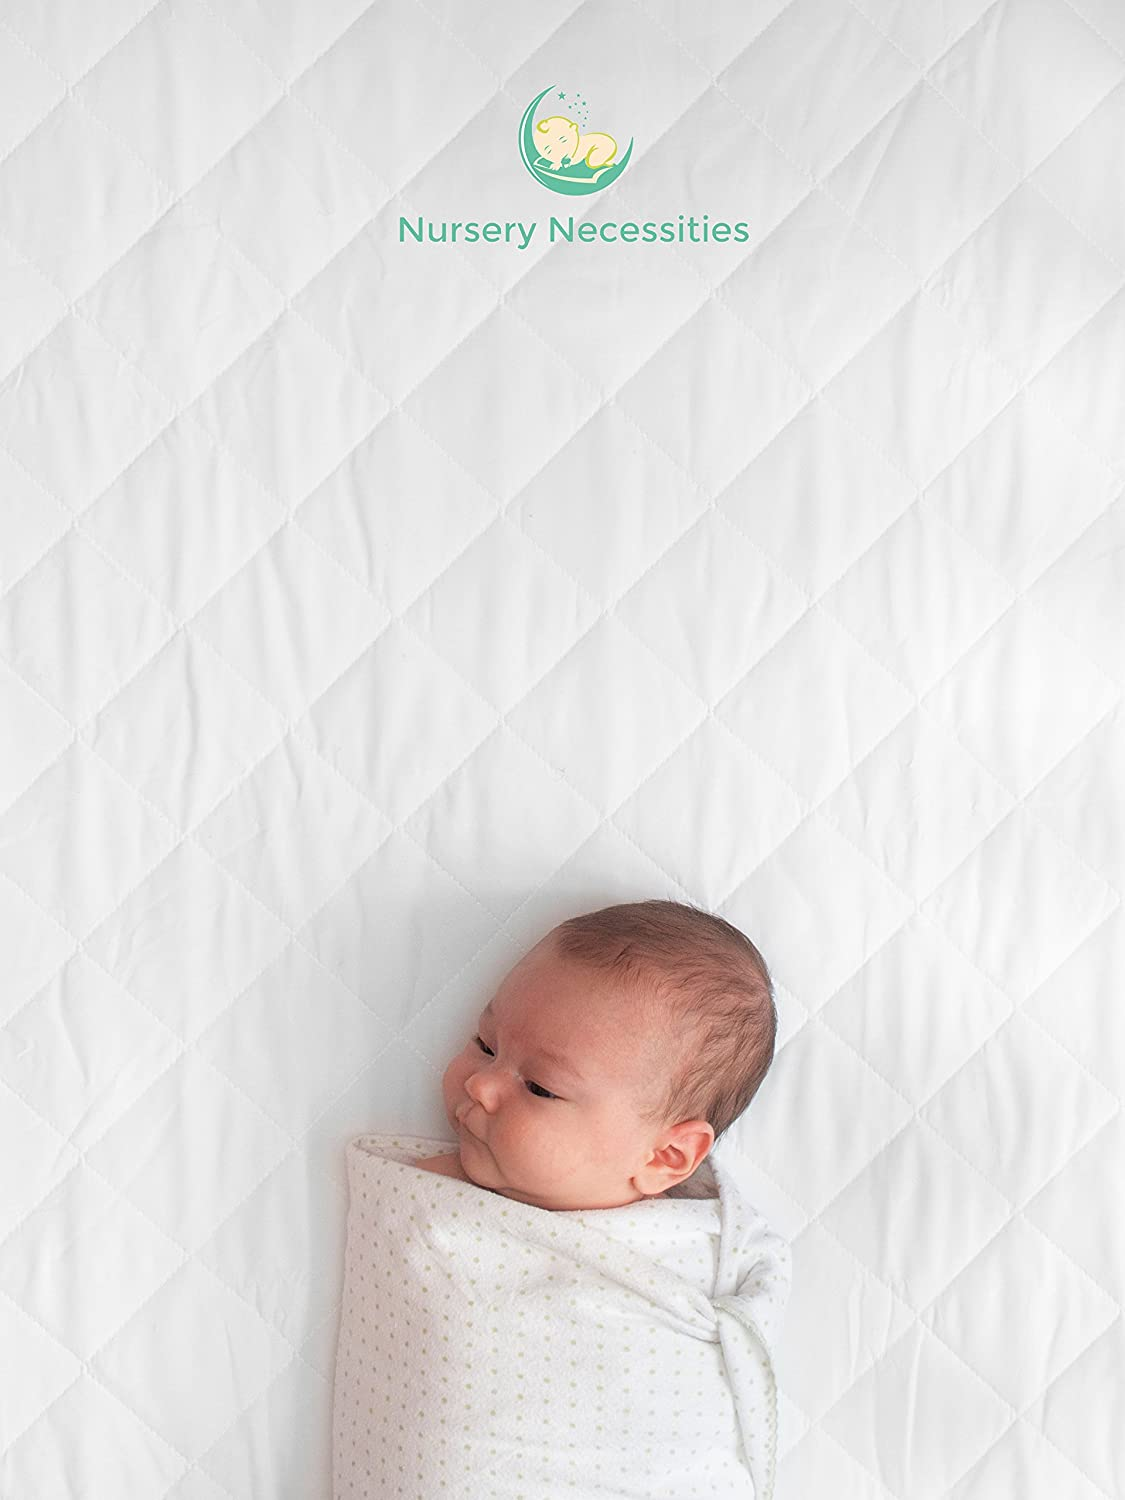 Amazon.com : #1 BEST Crib Mattress Pad - Waterproof, Silky Soft,  Hypoallergenic, Breathable - Helps Regulate Body Temp- Mattress Protector  by Nursery ...